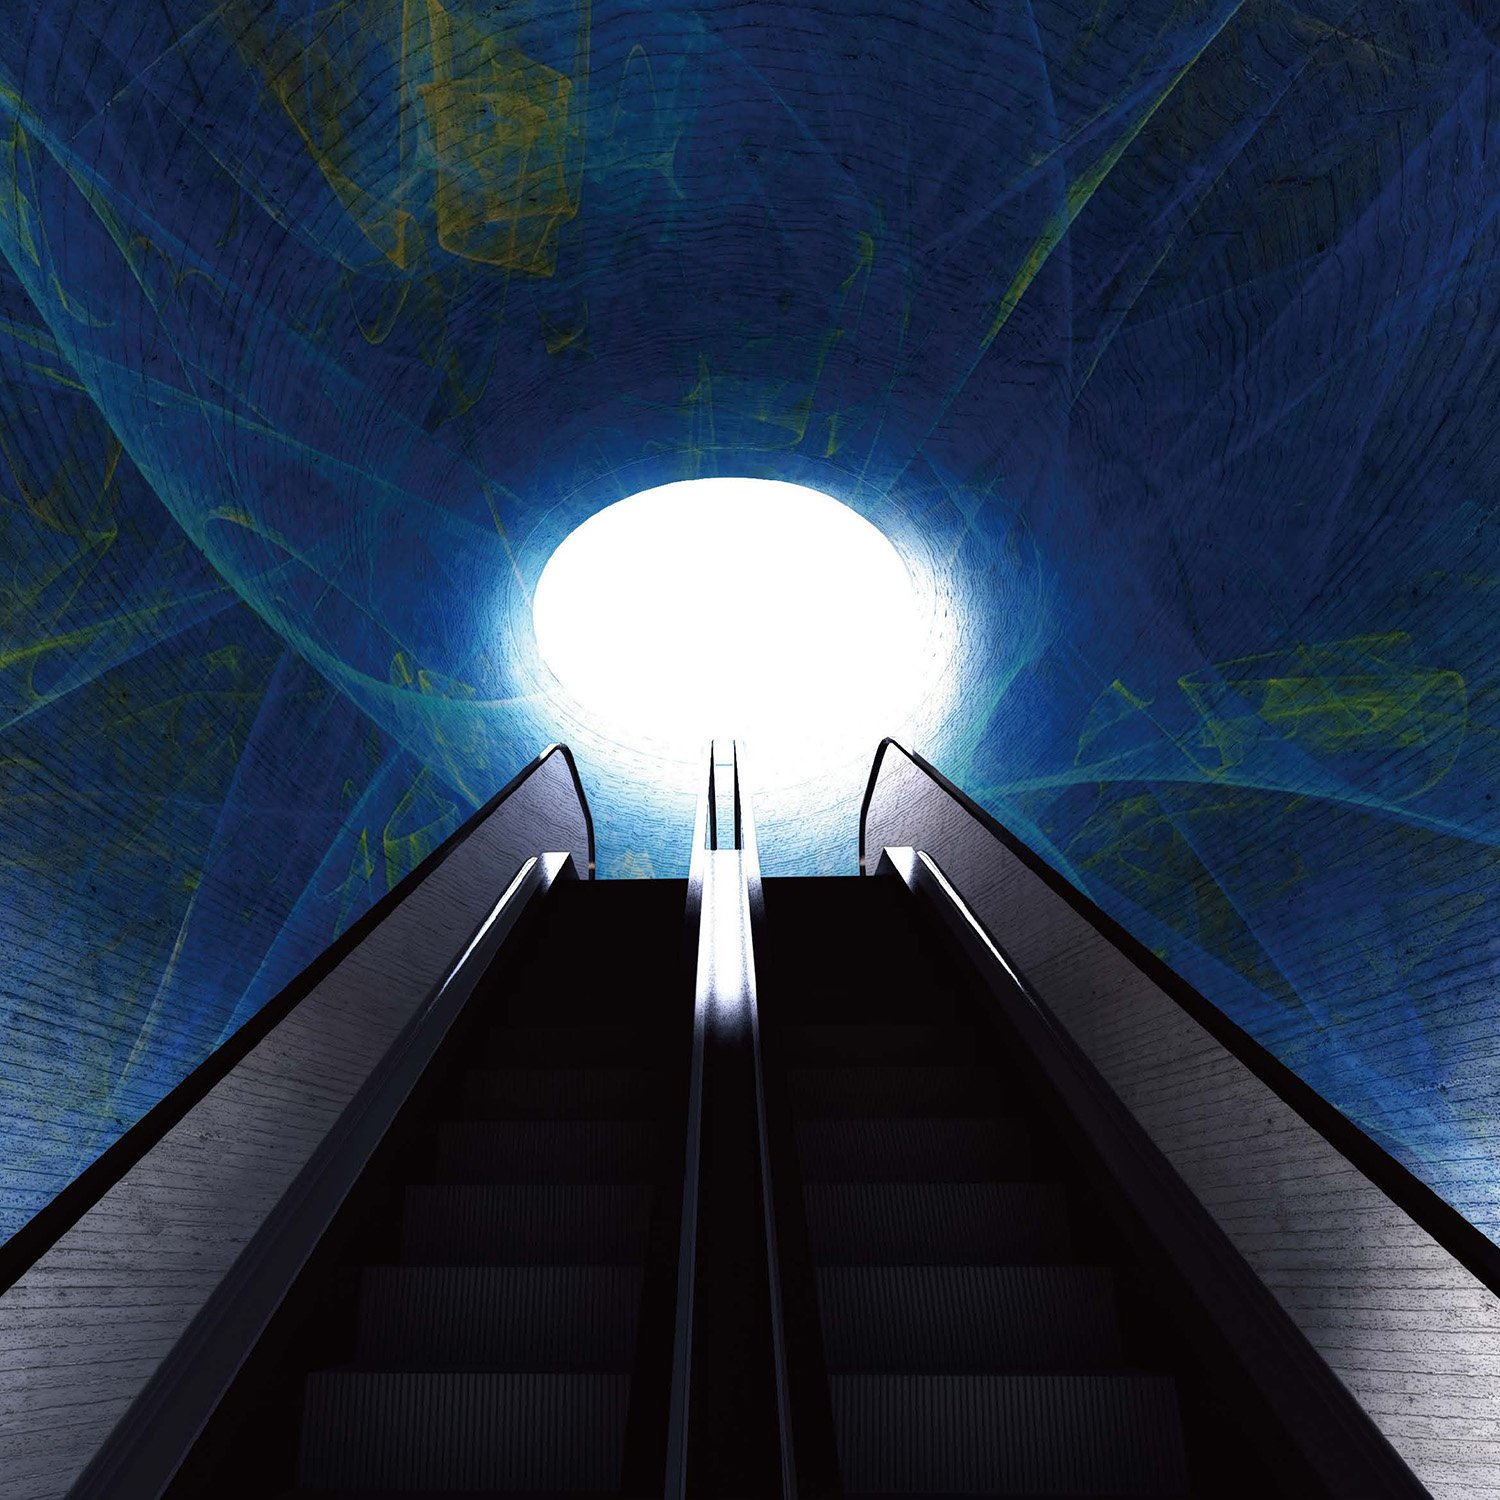 The Tunnel of Light with Digital Art Installation EID Architecture